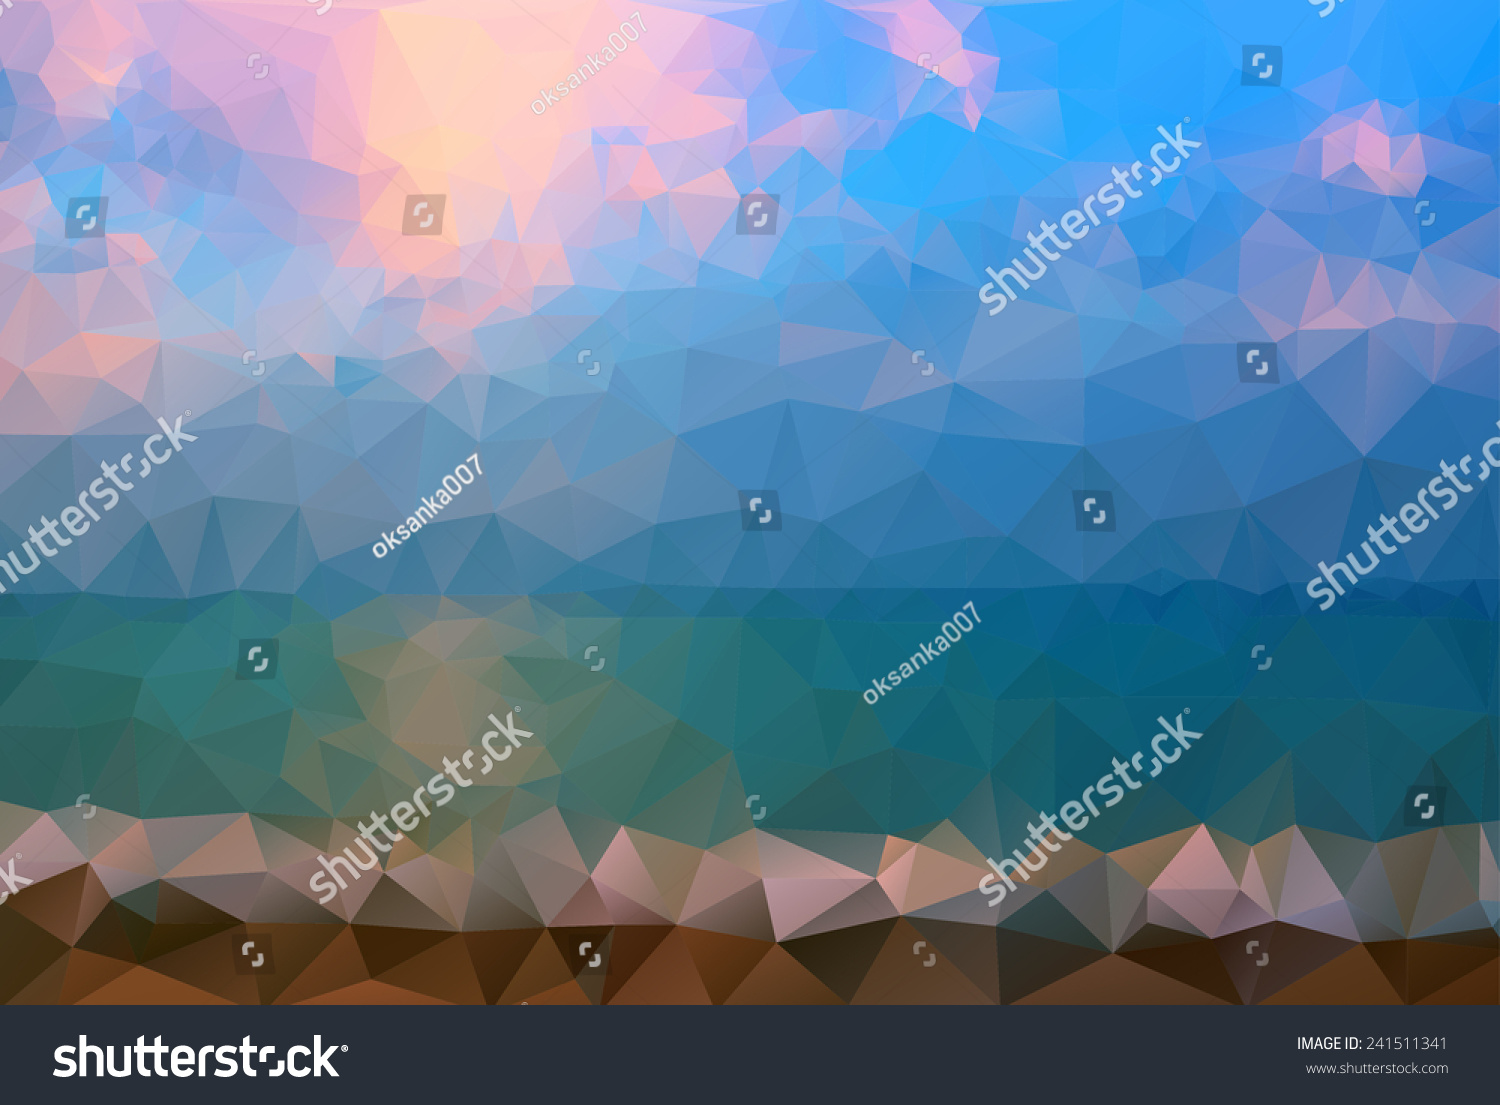 Website soft colors - Triangle Background Vector Polygon Art Soft Colored Abstract